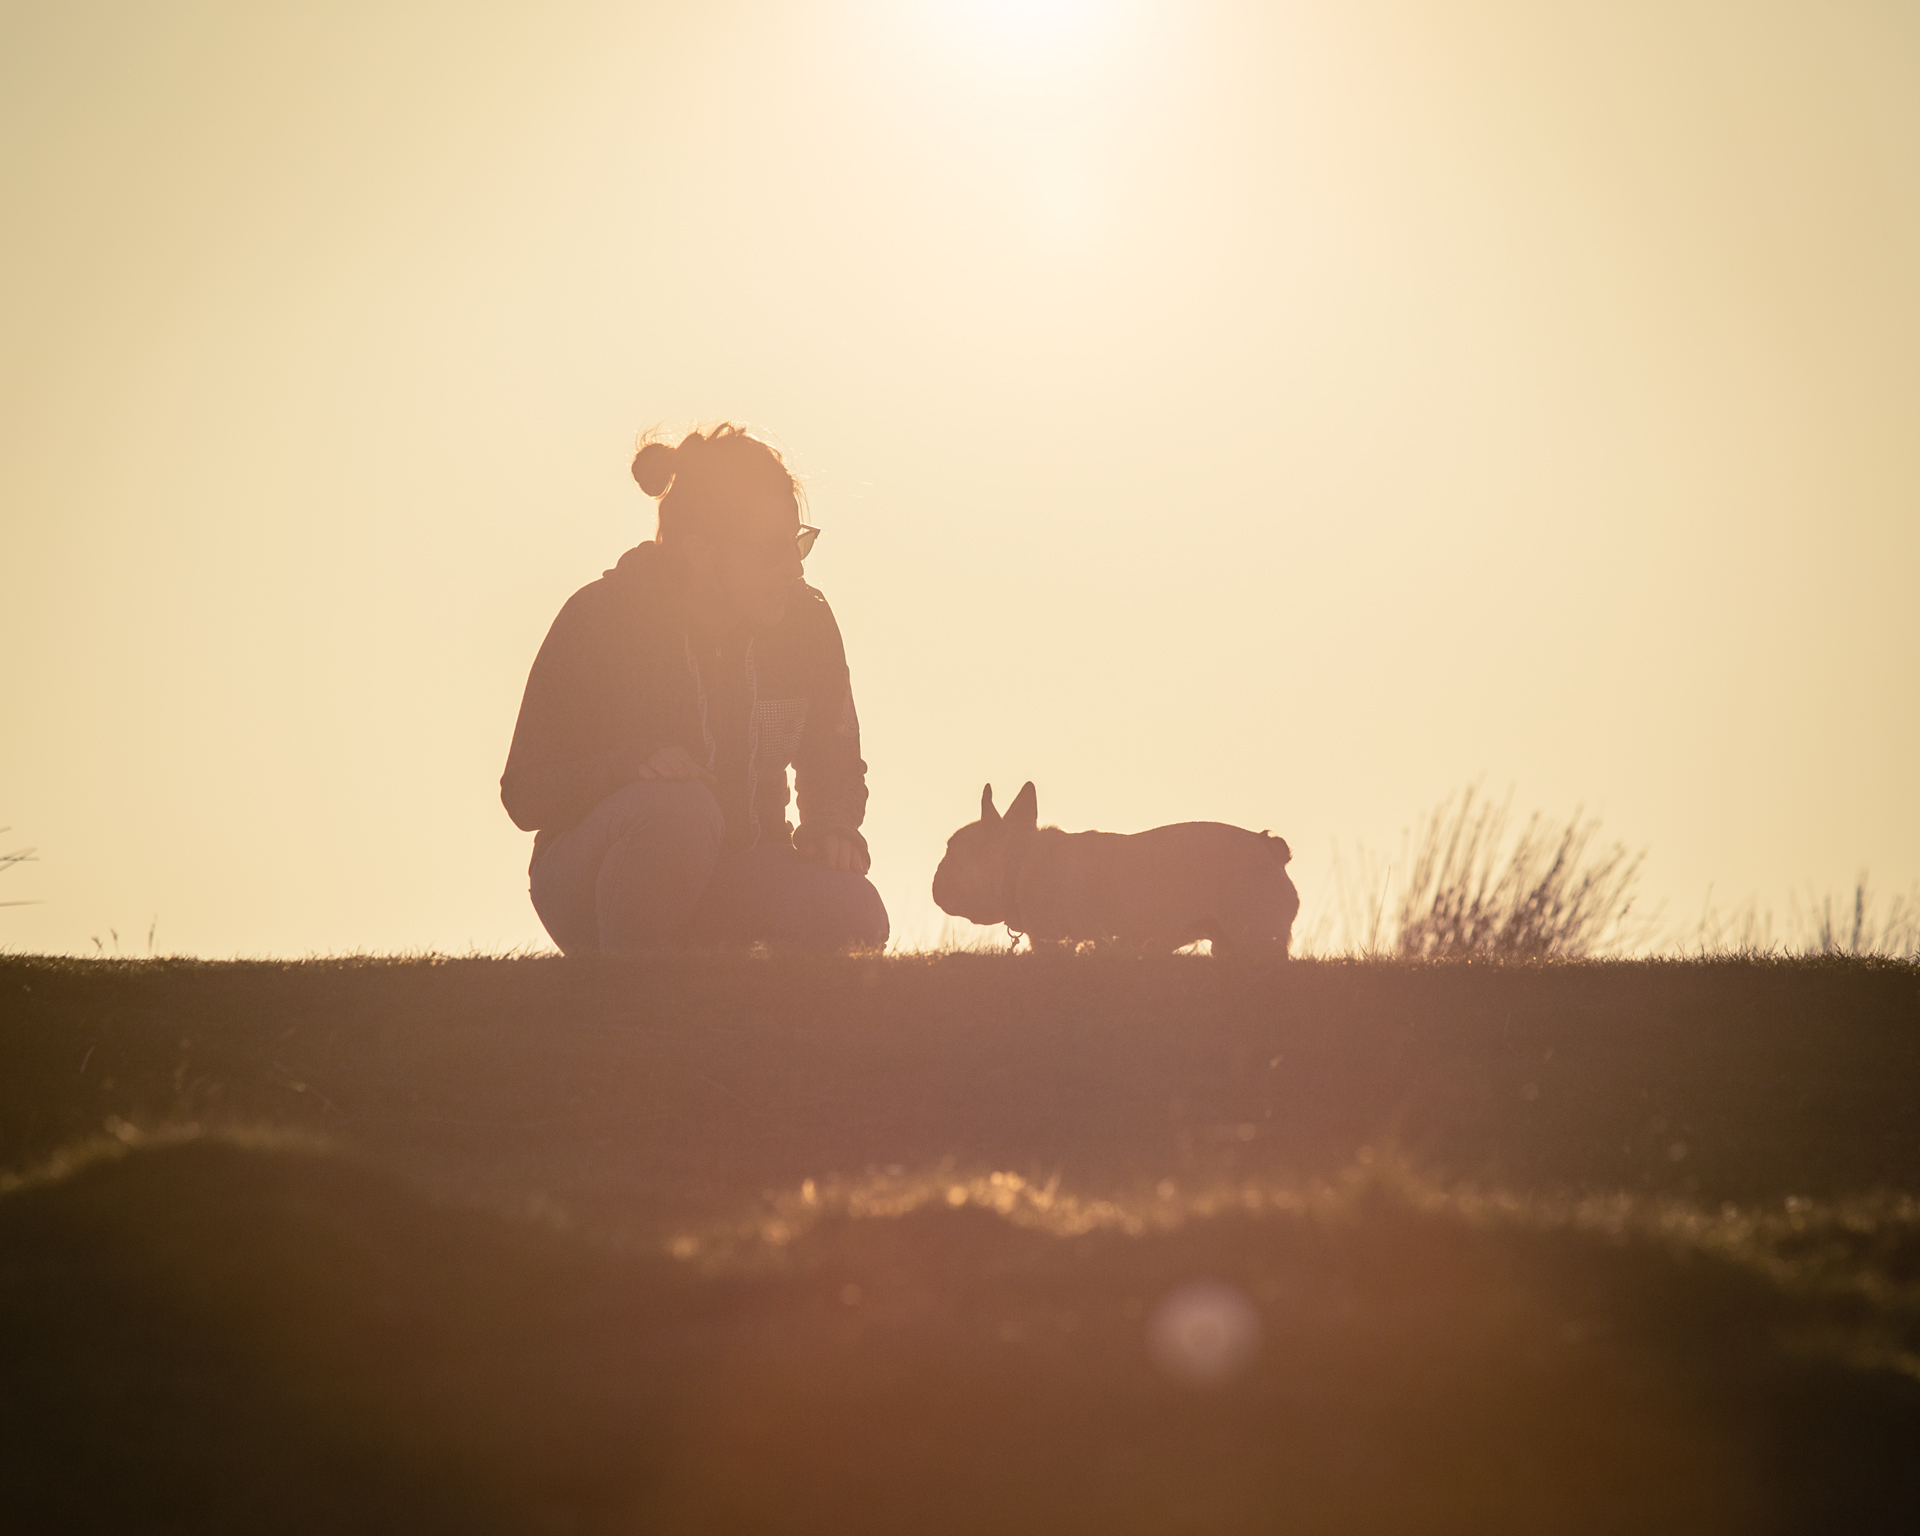 Silhouette of owner and dog